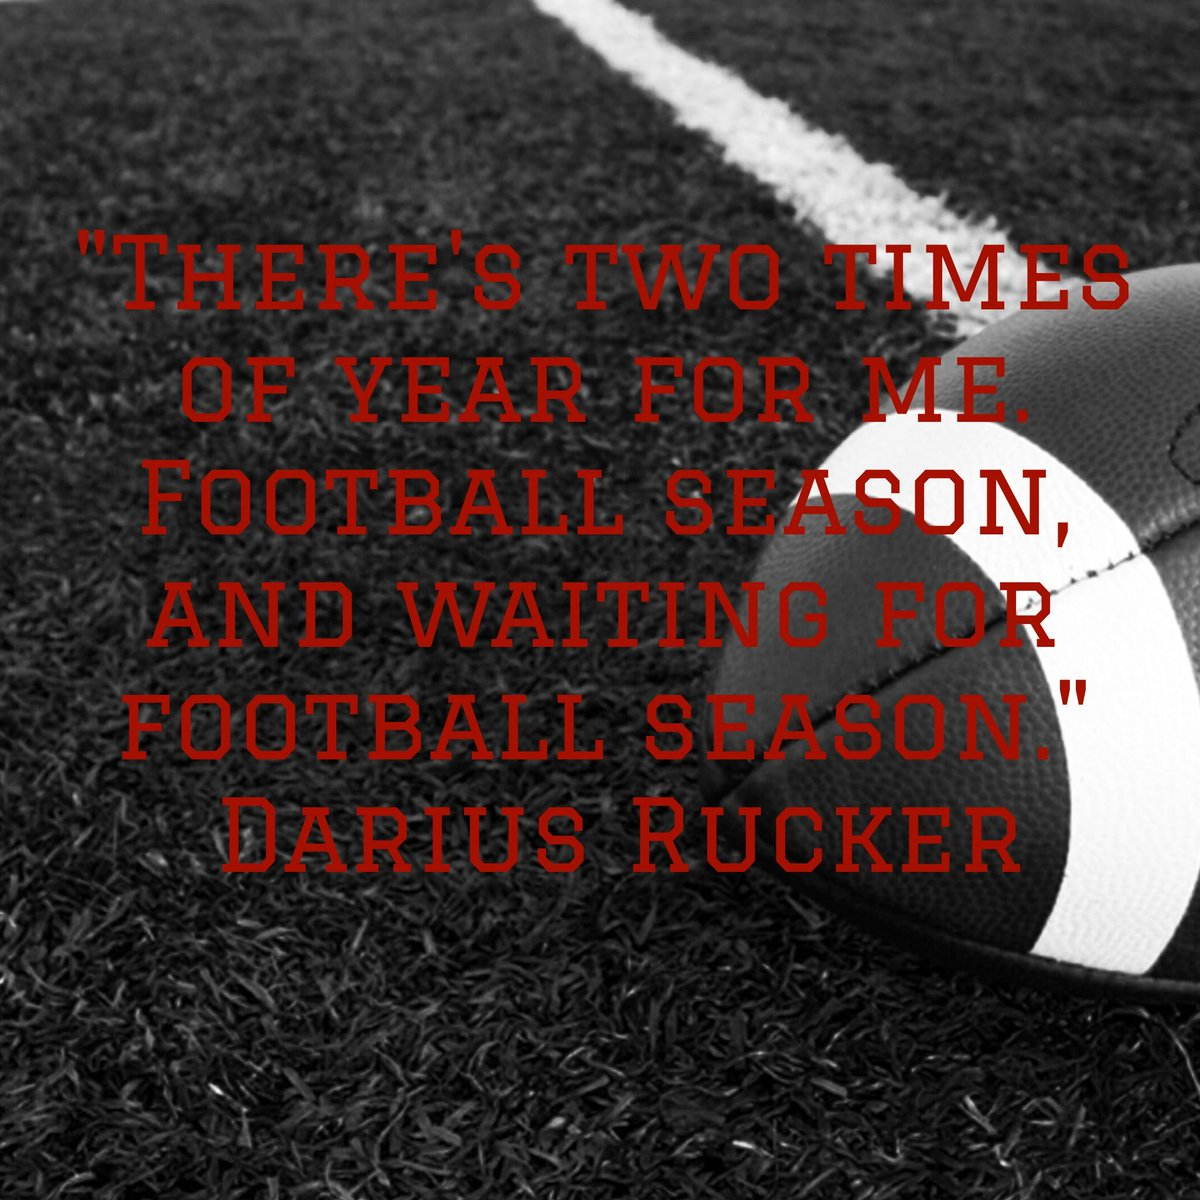 227 days until college football is back. Just sayin'… http://t.co/2NxCCz3yJV